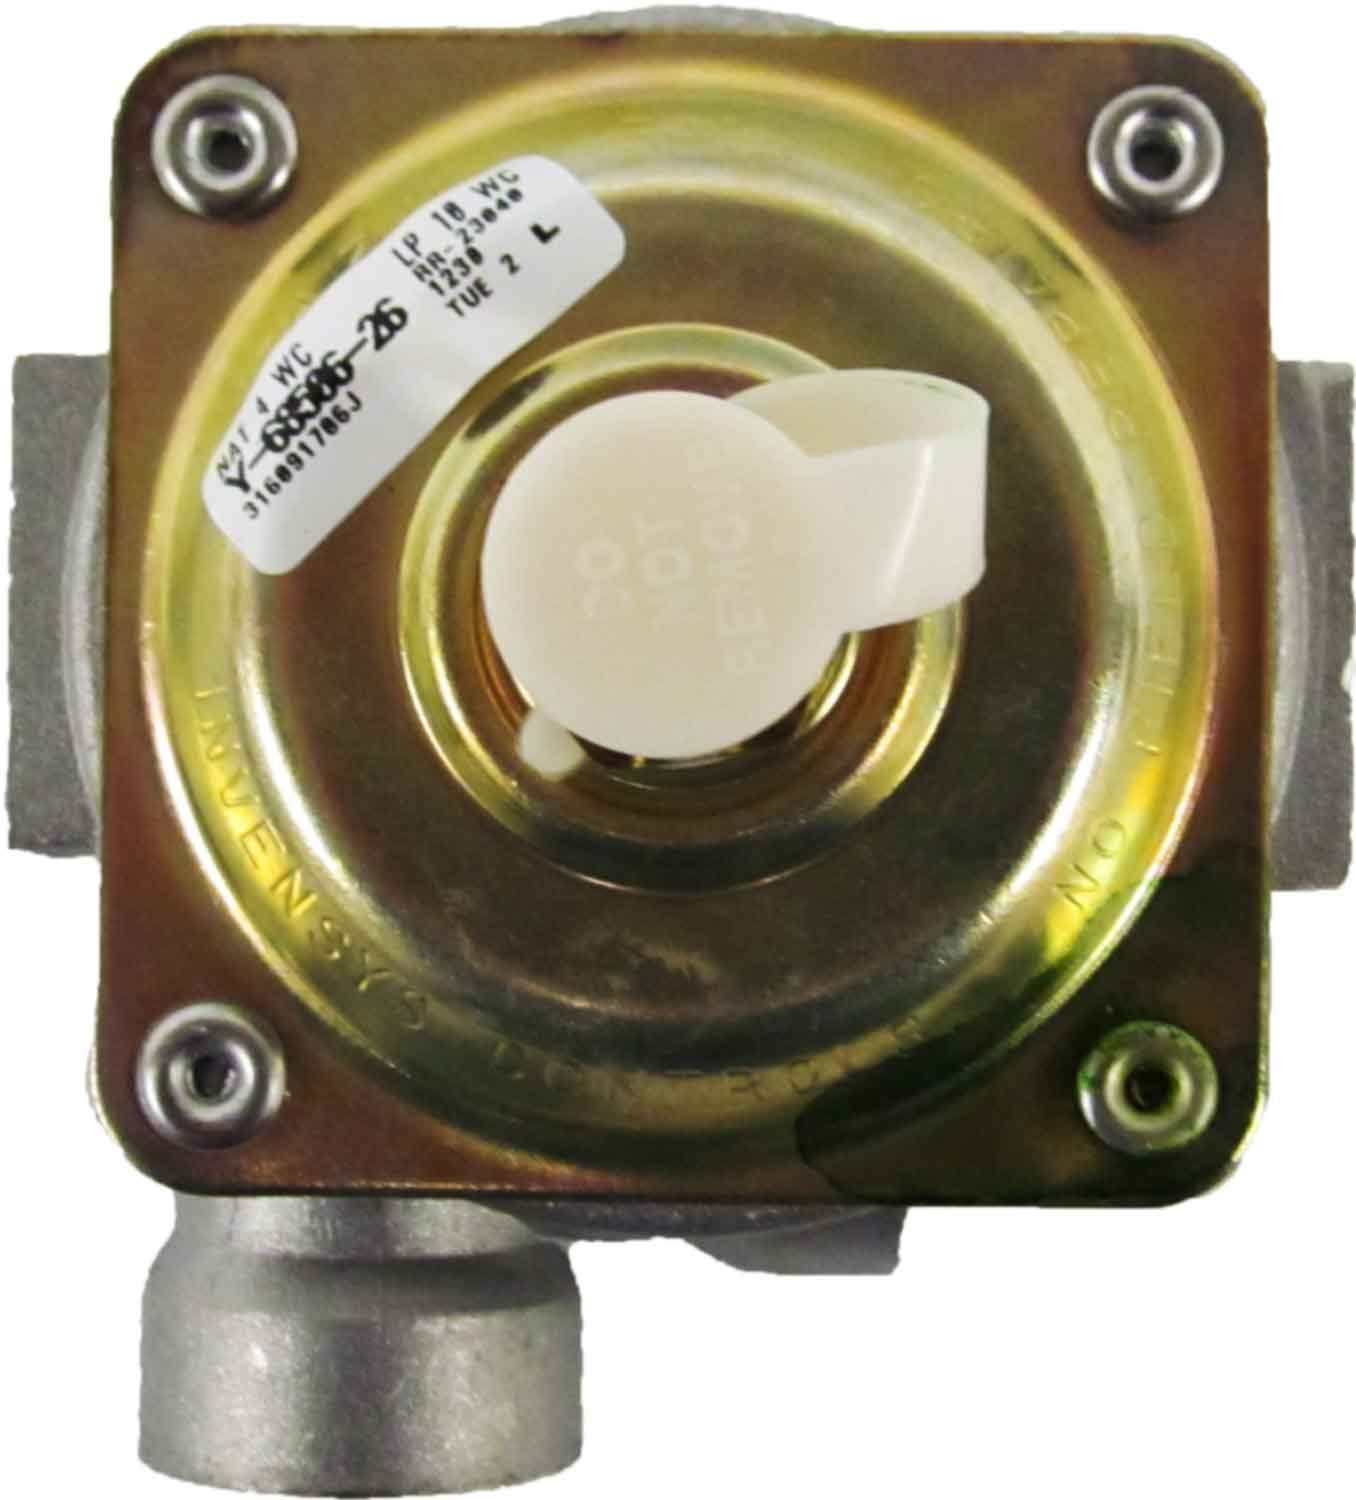 Frigidaire 316091706 Cooking Range Regulator